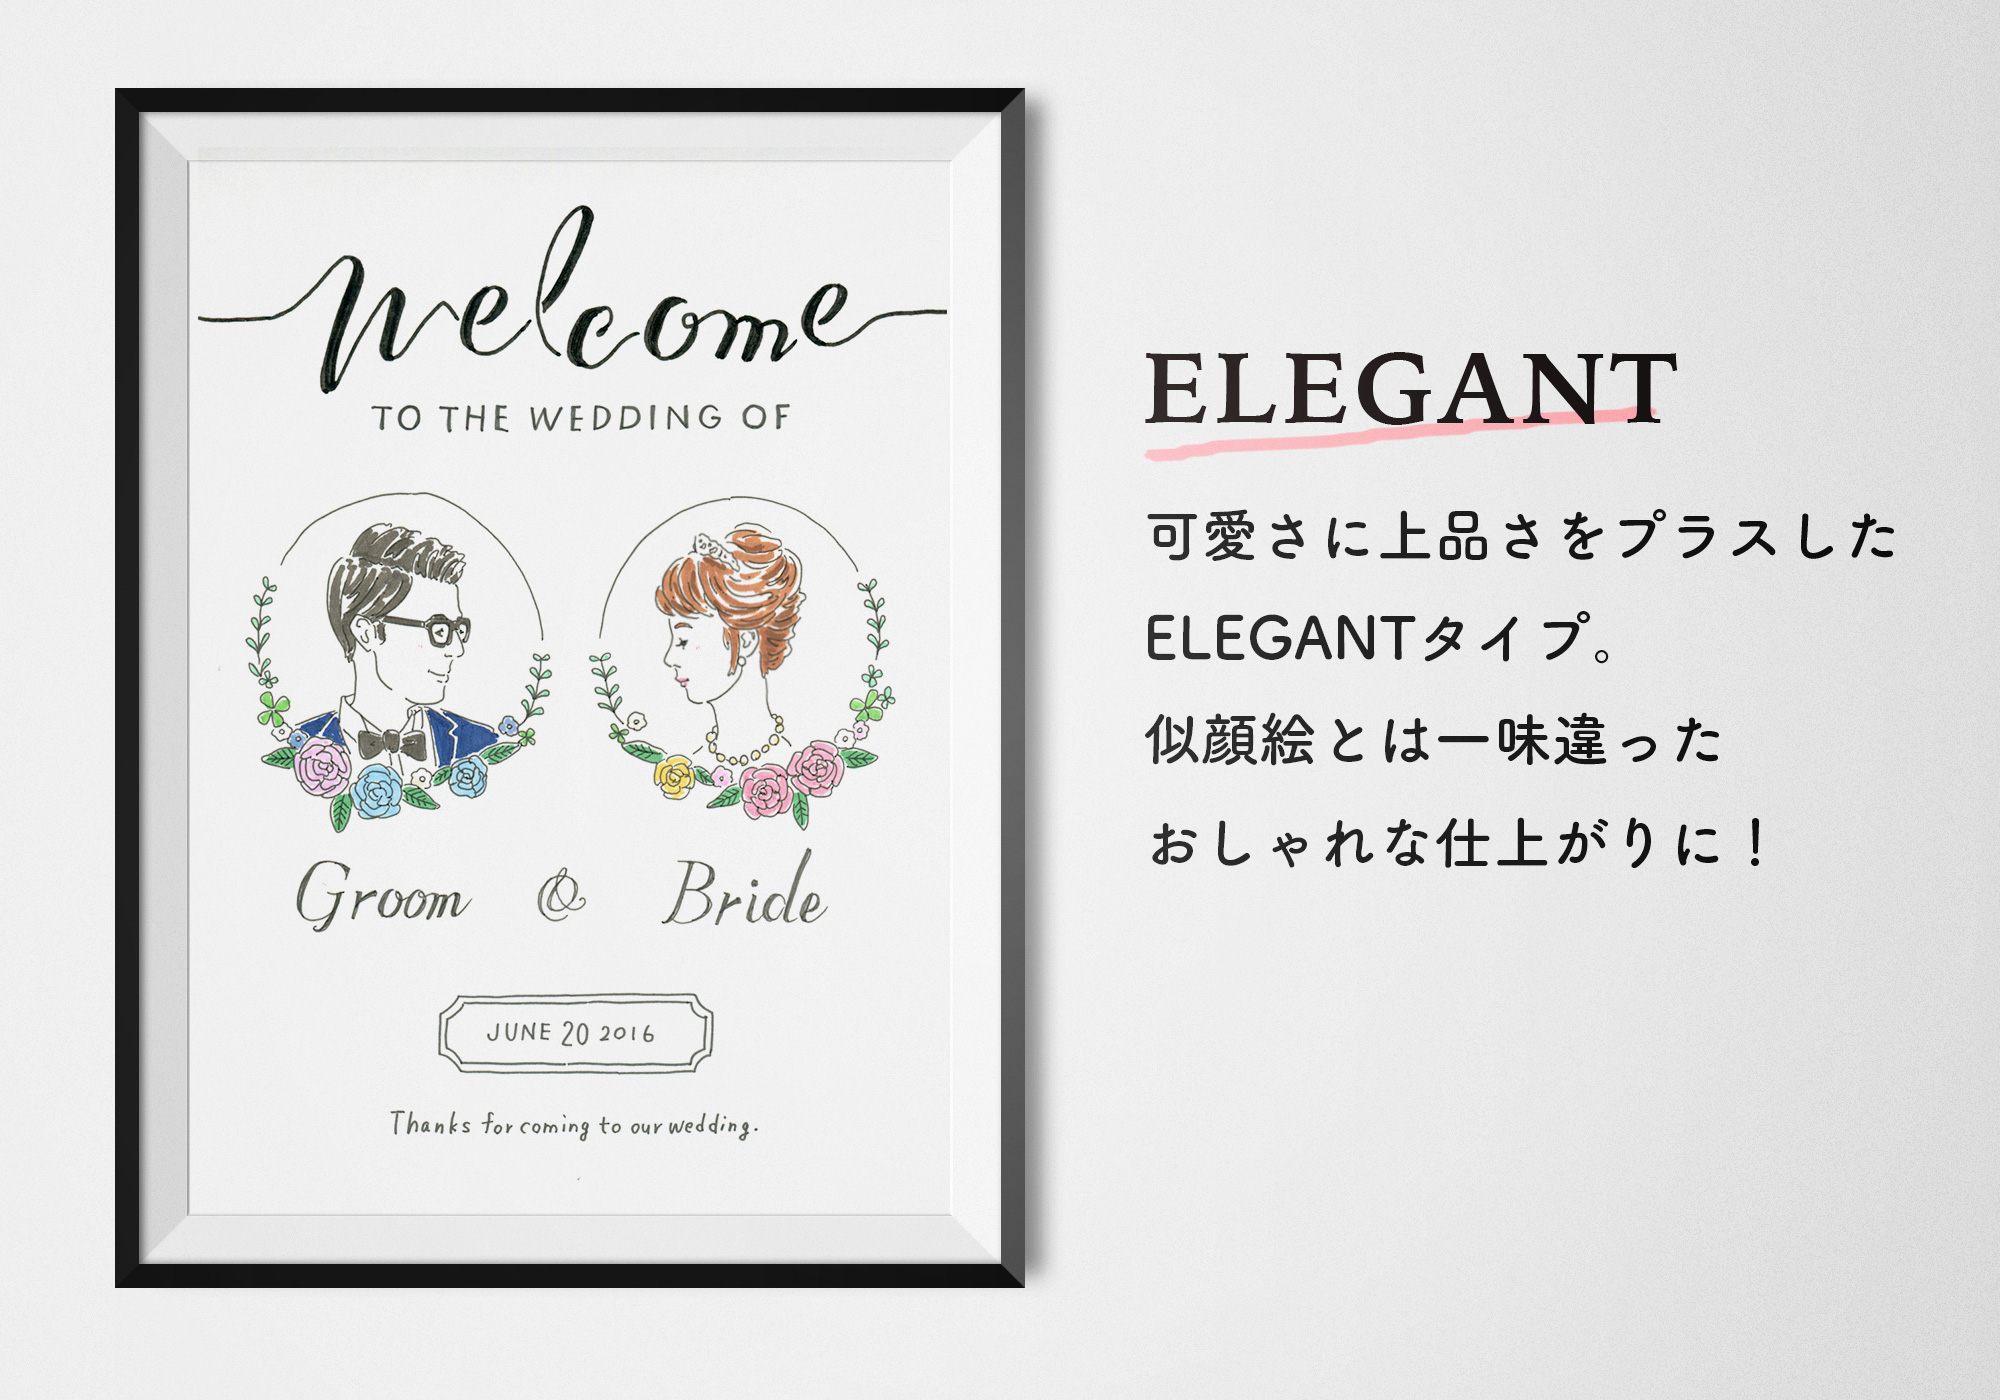 wedding_type2_frame_text